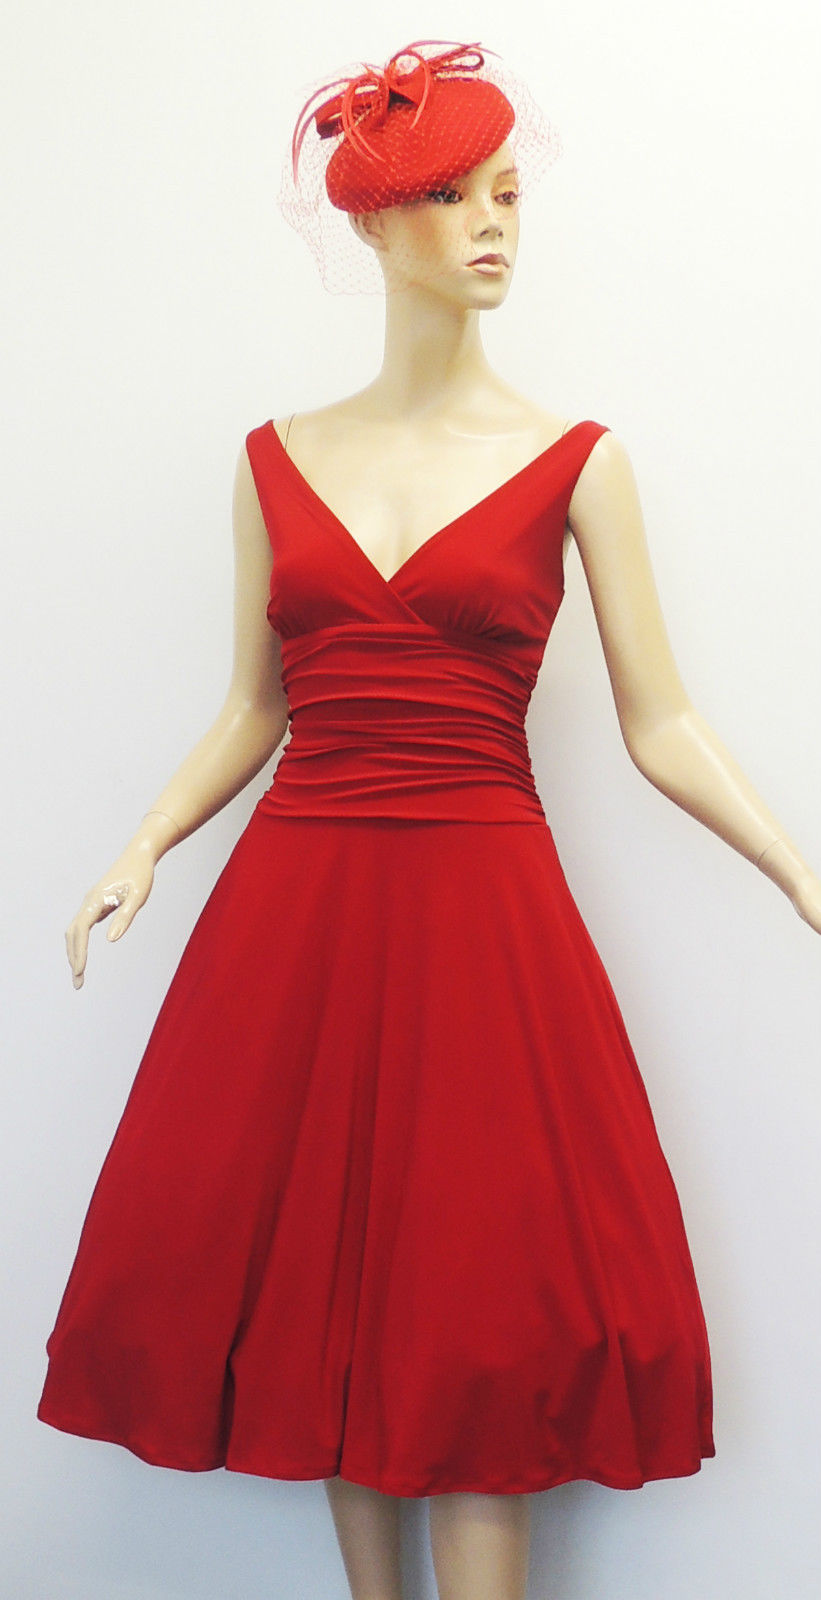 New-Rosa-Rosa-Vtg-1950-039-s-Rockabilly-034-Jane-034-Pin-Up-Party-Salsa-Swing-Prom-Dress